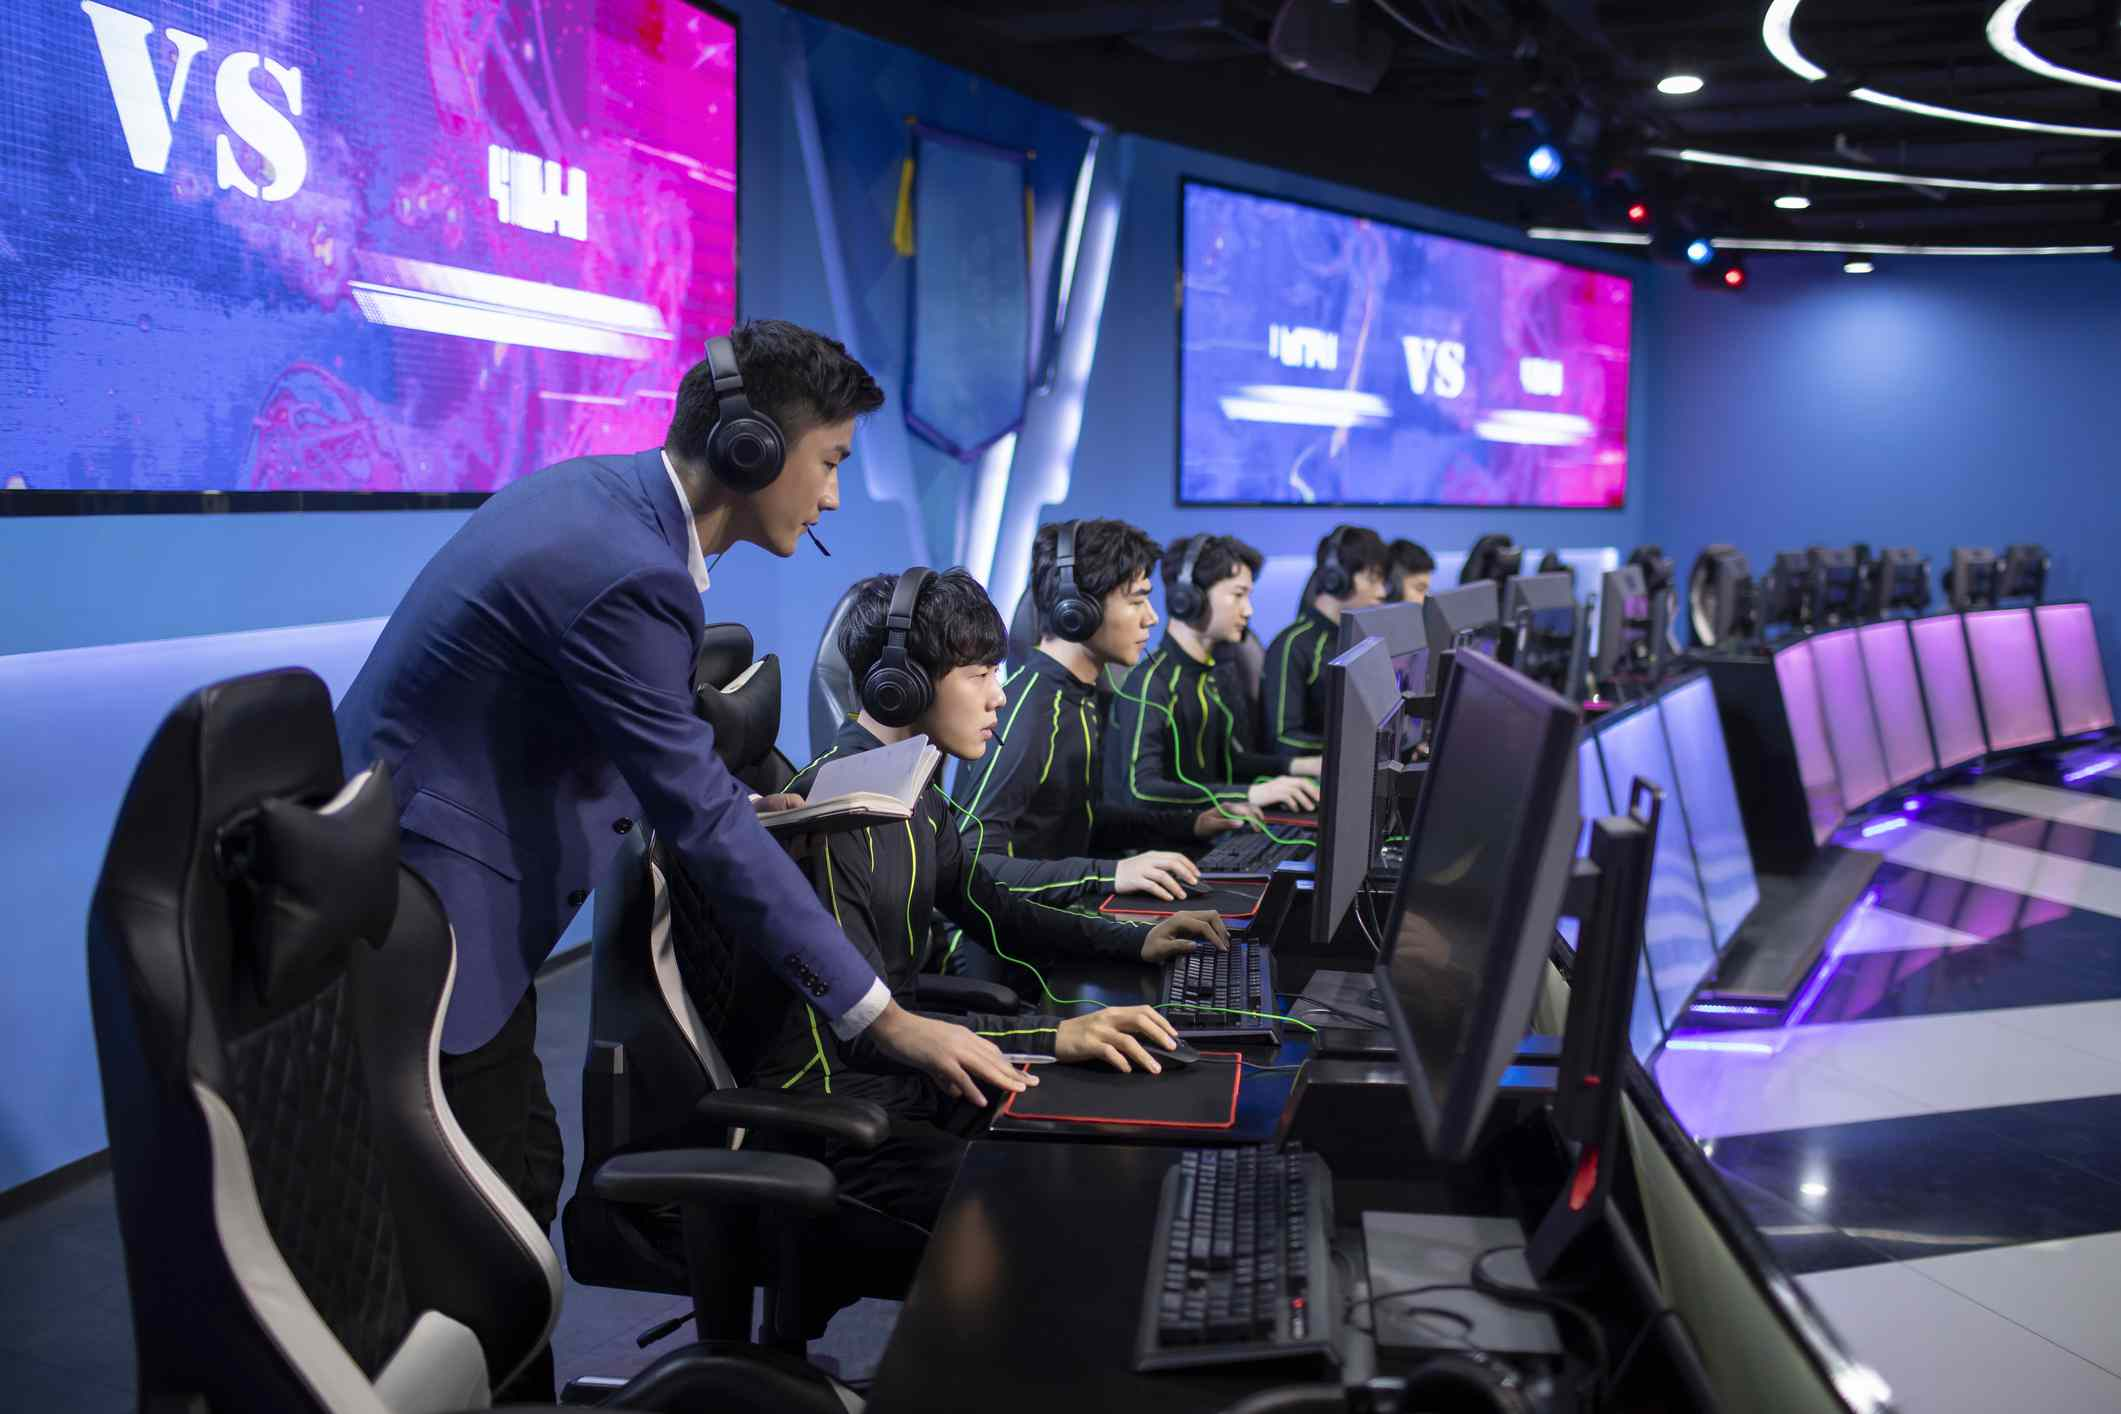 A young person coaching an esports team.